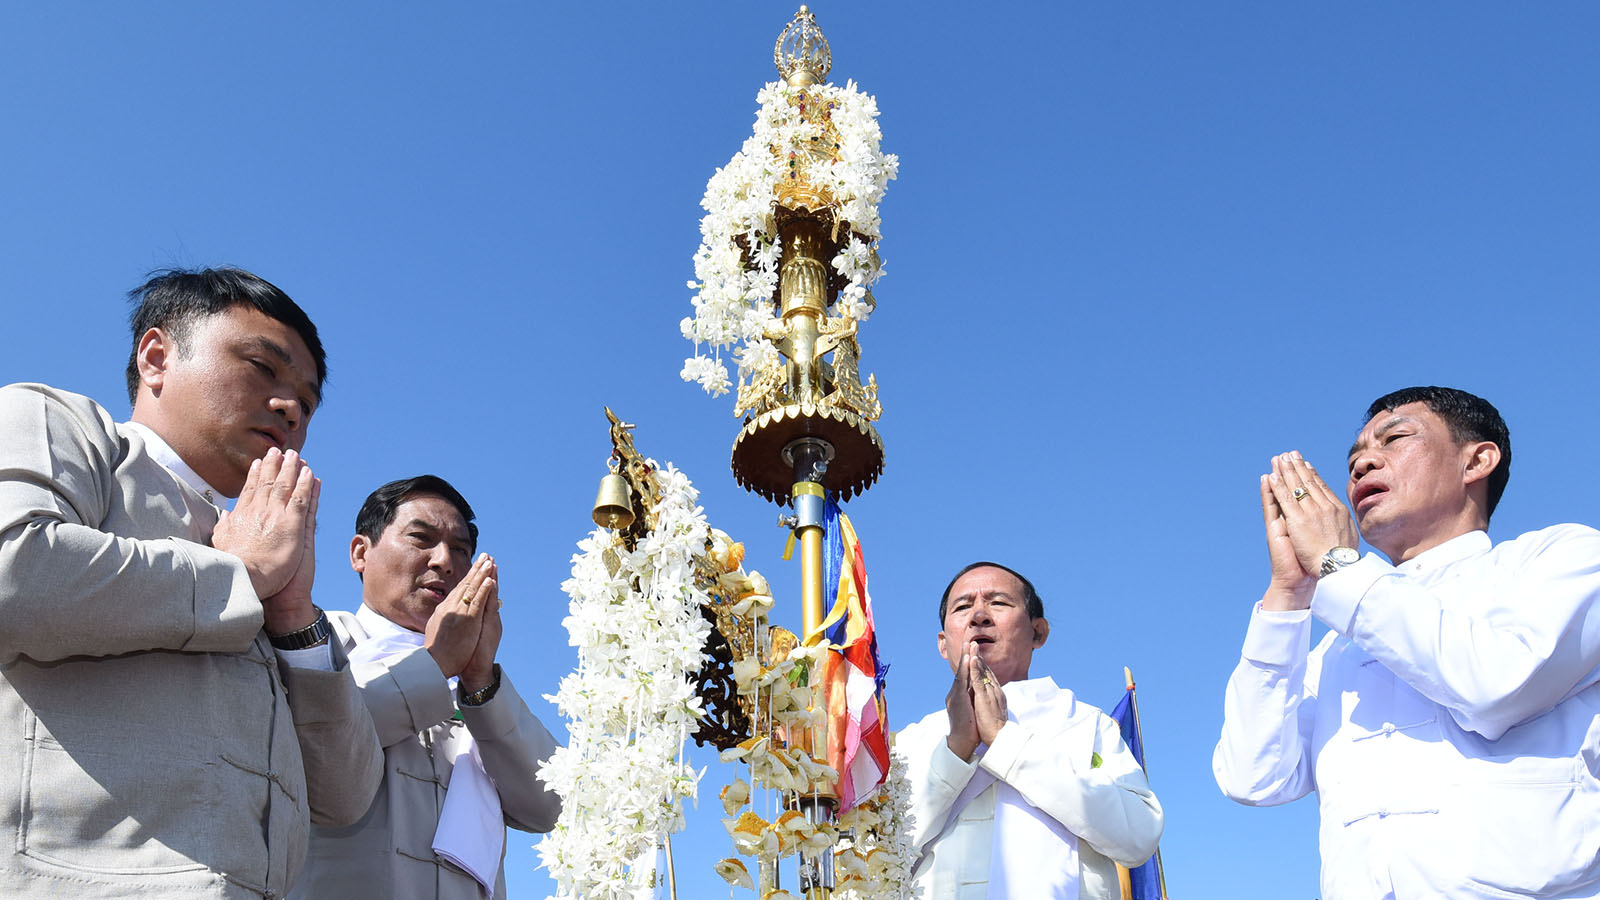 President U Win Myint and officials recite religious verses after the fixed the Diamond Bud atop Taungsuya 'Wa' Zedi yesterday.Photo: MNA